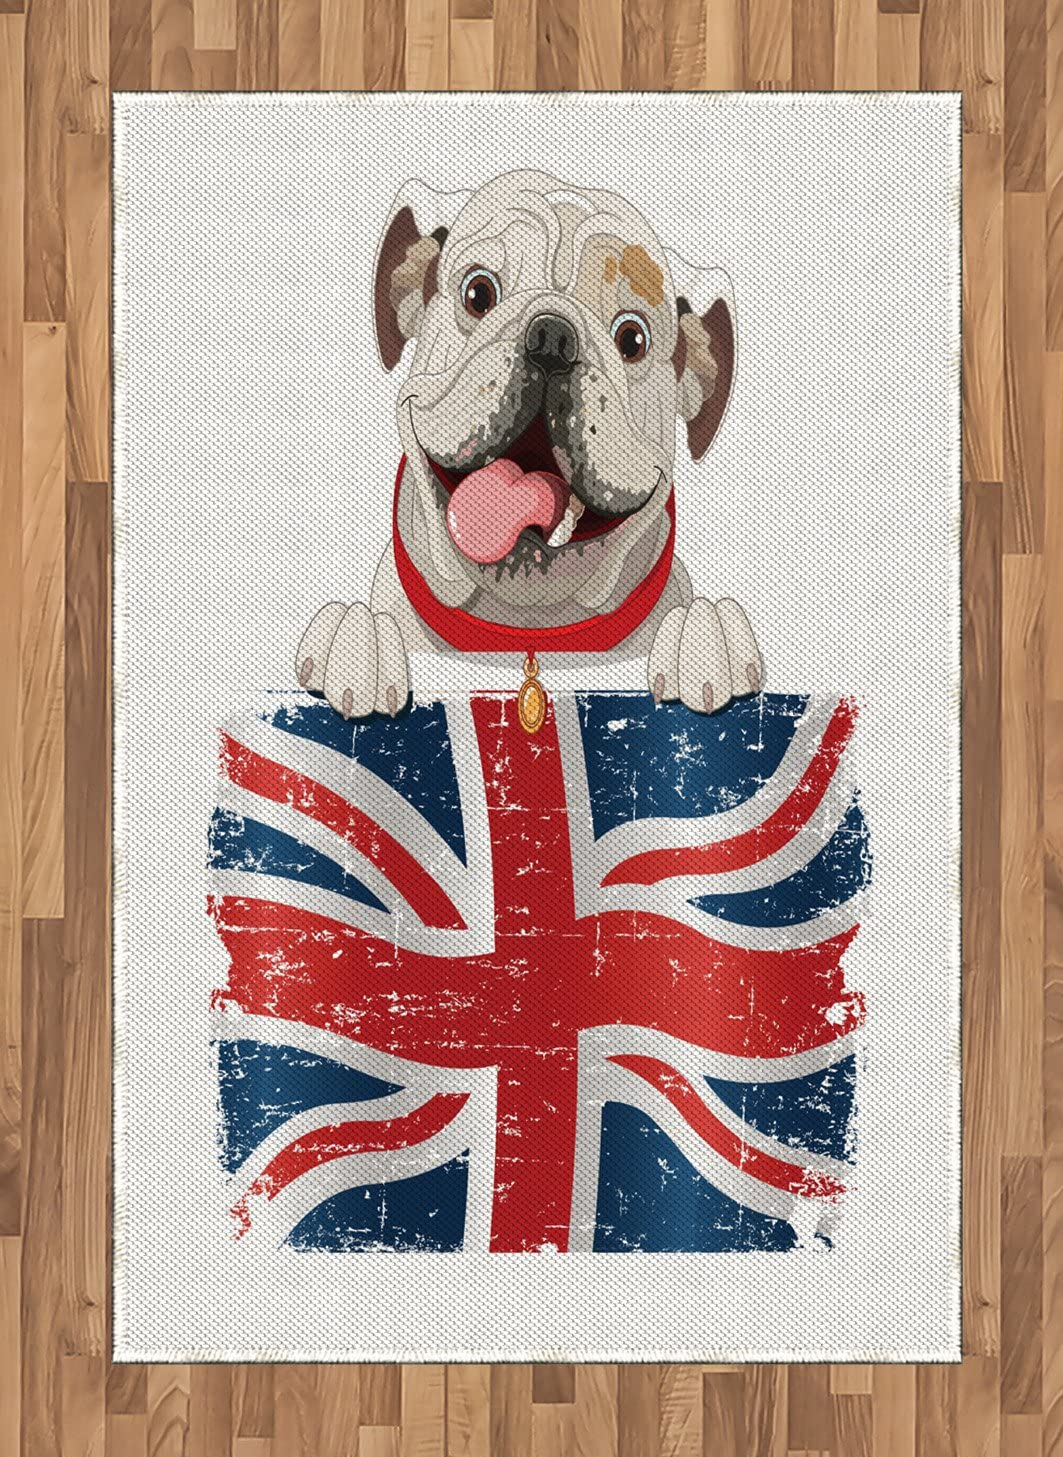 Ambesonne English Bulldog Area Rug, Happy Pet Bulldog Holding a Union Jack Flag of The Britain, Flat Woven Accent Rug for Living Room Bedroom Dining Room, 4' X 5.7', Cream Navy Blue Red